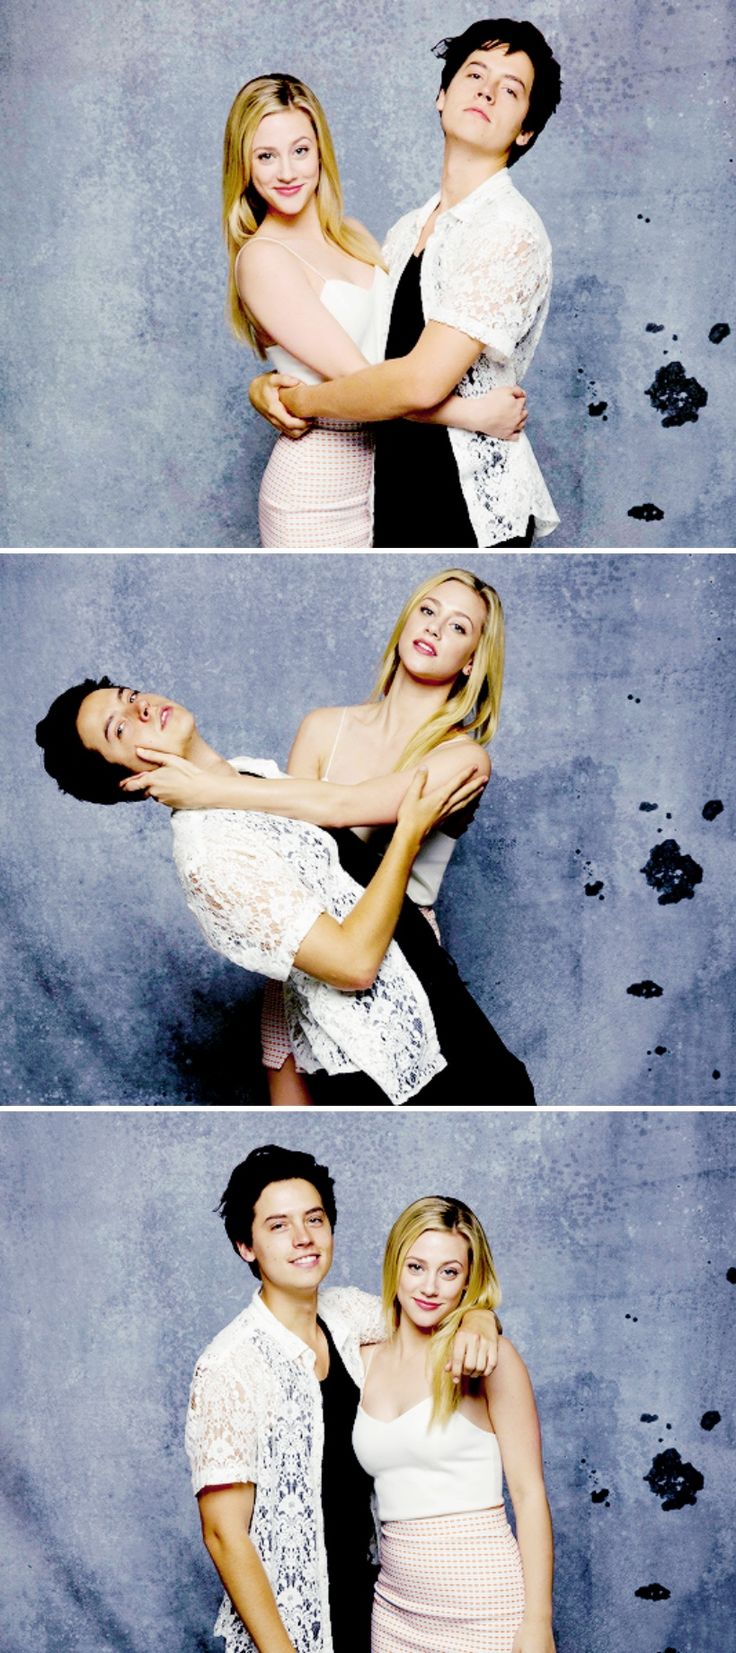 Cole Sprouse and Lili Reinhart photographed in the L.A. Times photo studio at Comic-Con 2017, in San Diego, CA on July 22, 2017